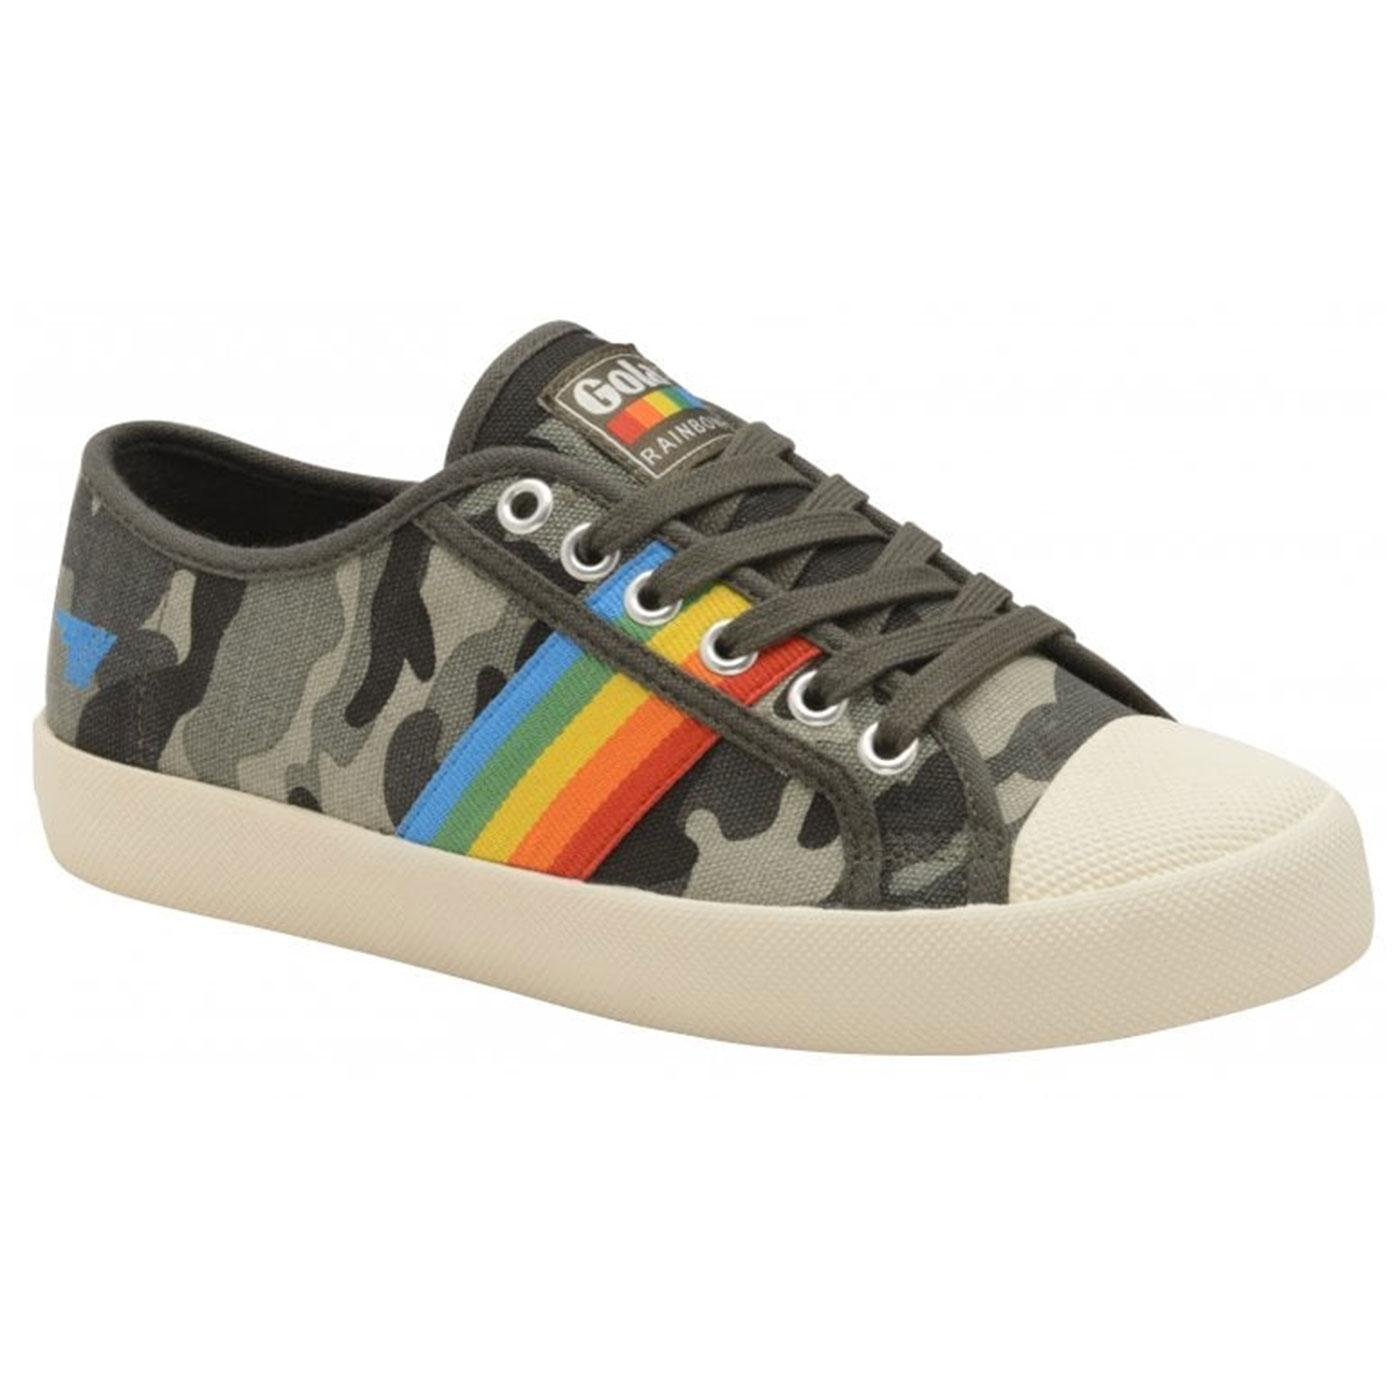 Coaster Rainbow Camo GOLA Retro 1990s Trainers